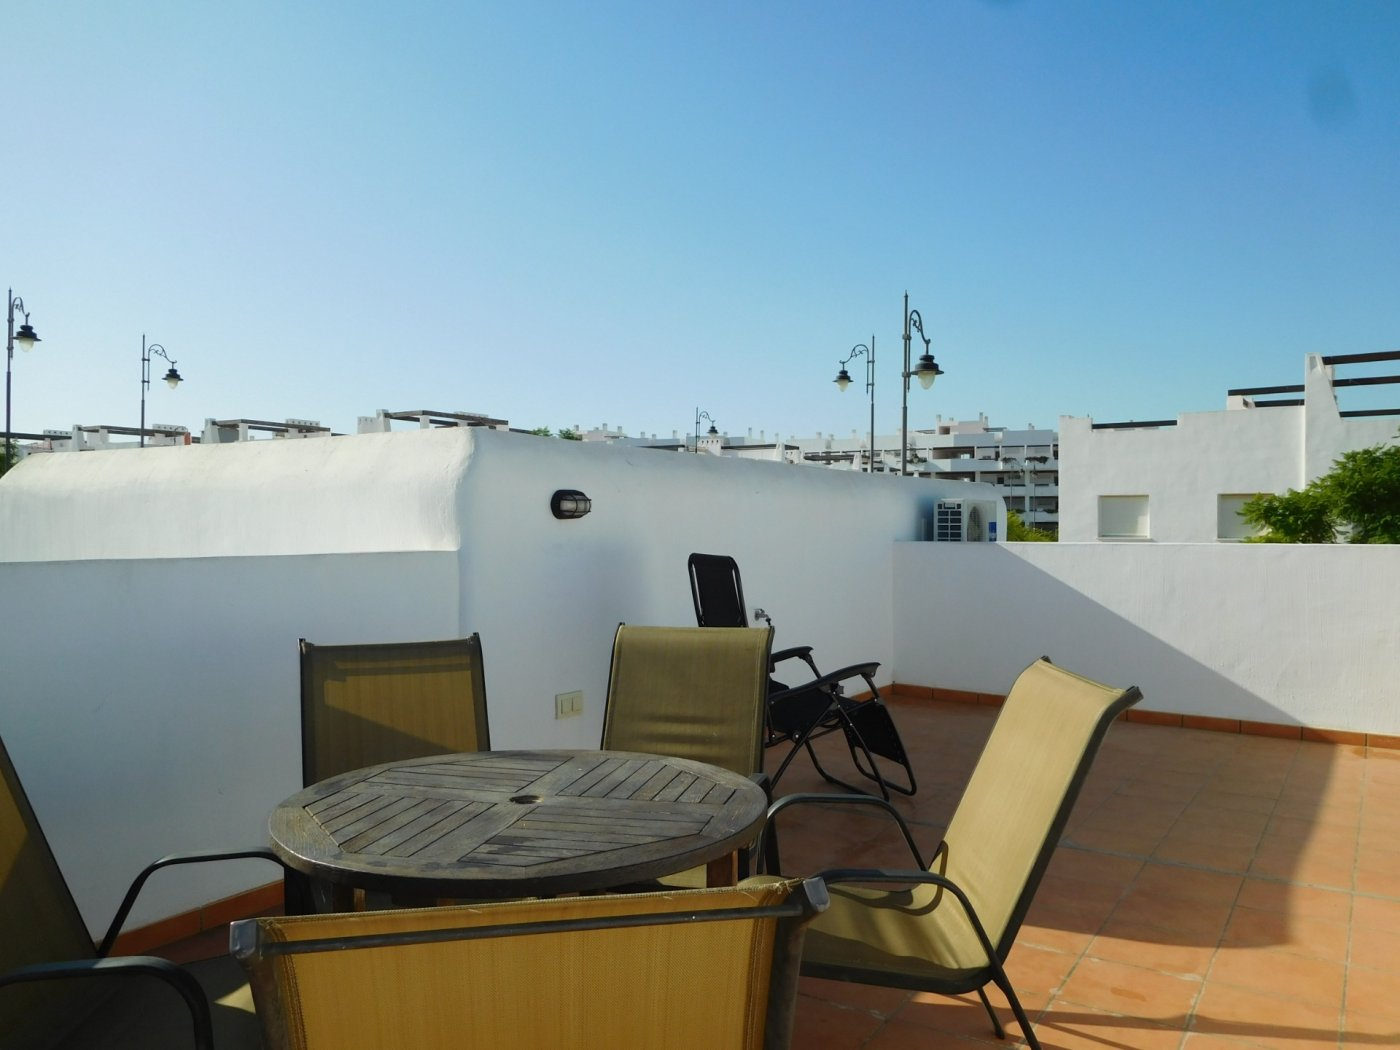 Gallery Image 23 of Casa For rent in Condado De Alhama, Alhama De Murcia With Pool